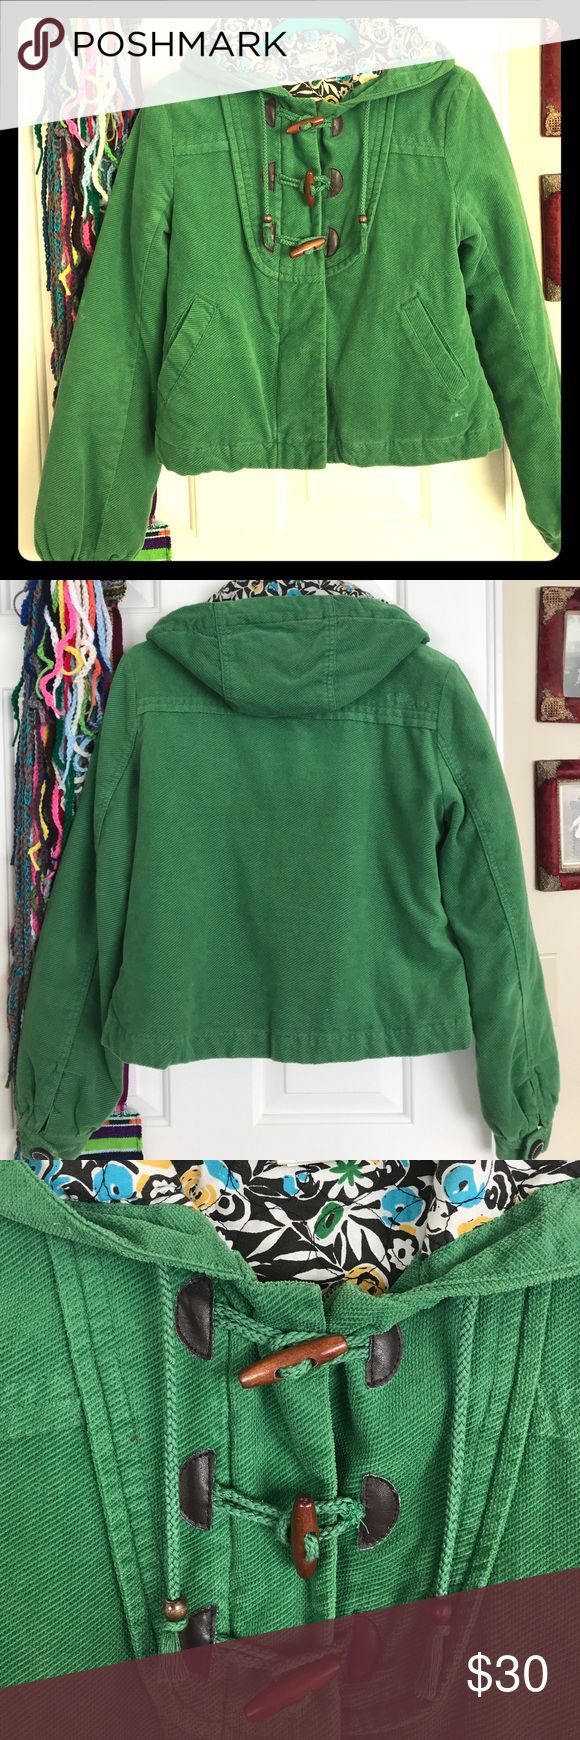 O'Neill Kelly Green Jacket size Medium Super cute Women's O'Neill jacket in size medium. It's jelly green outside and the inside is an adorable floral design. It zips up and also has 3 toggle buttons. Has a hood and is a very soft 100% cotton material. O'Neill Jackets & Coats